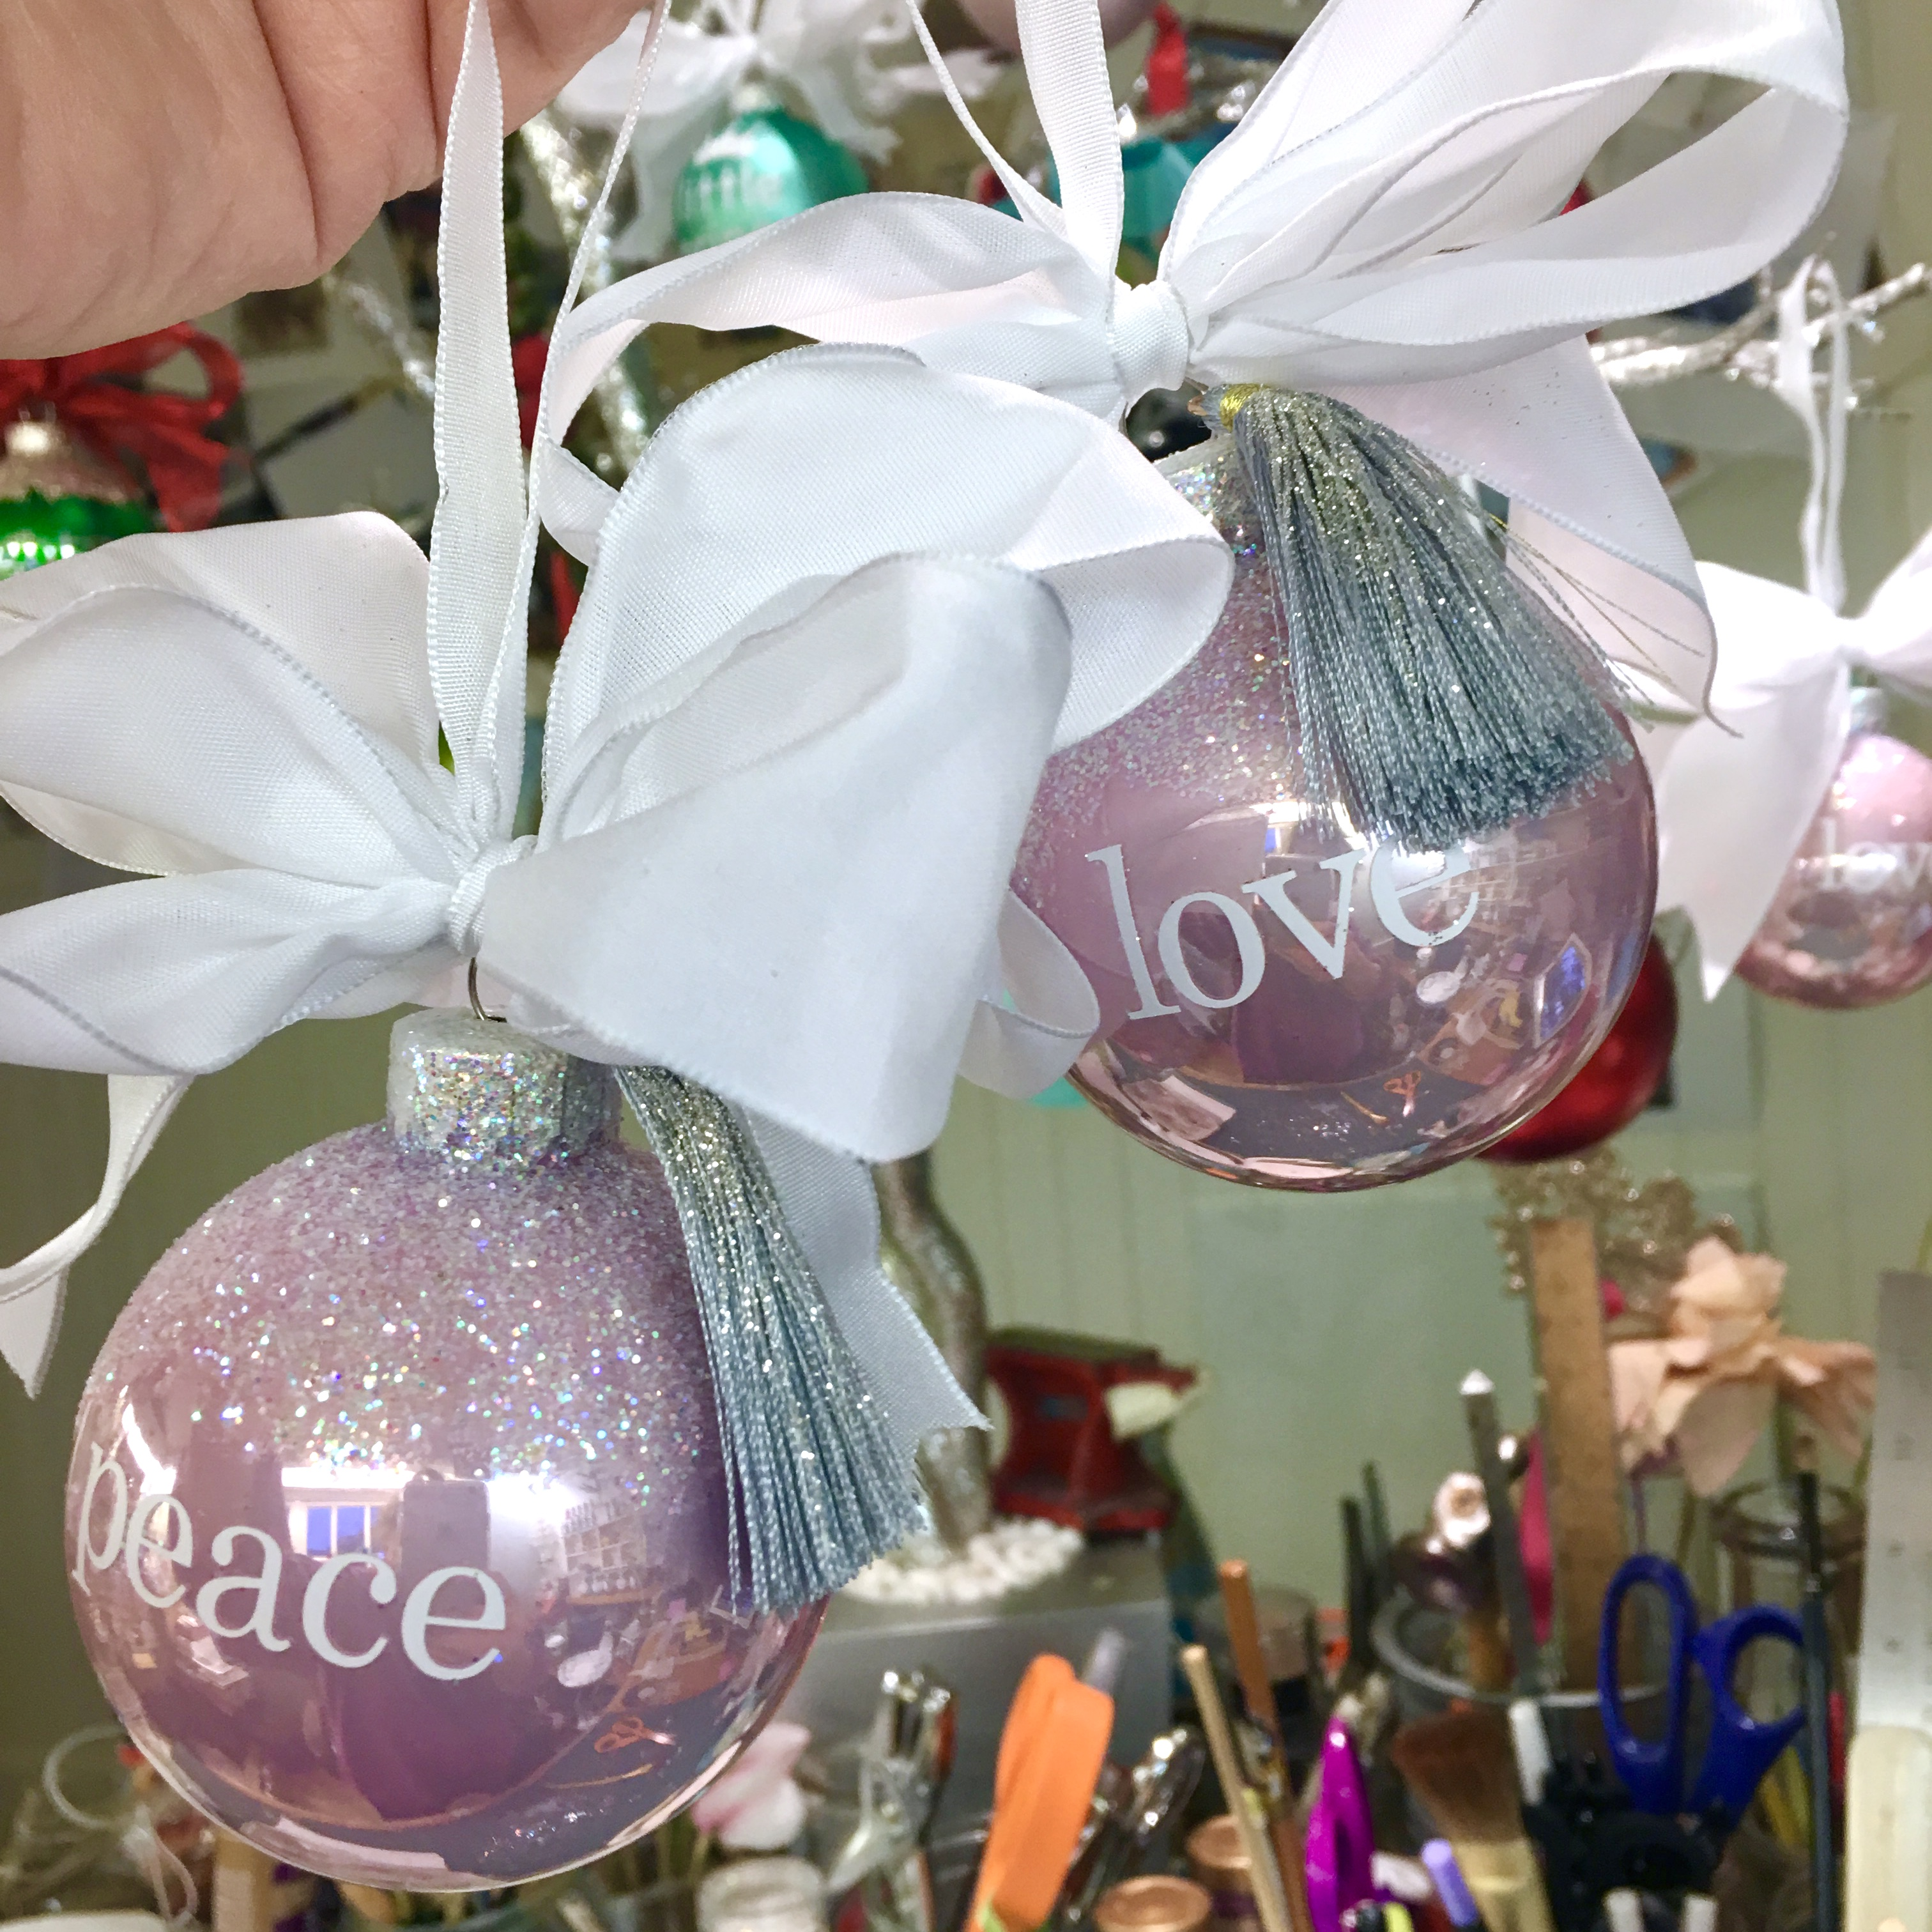 peace & love glass ornament